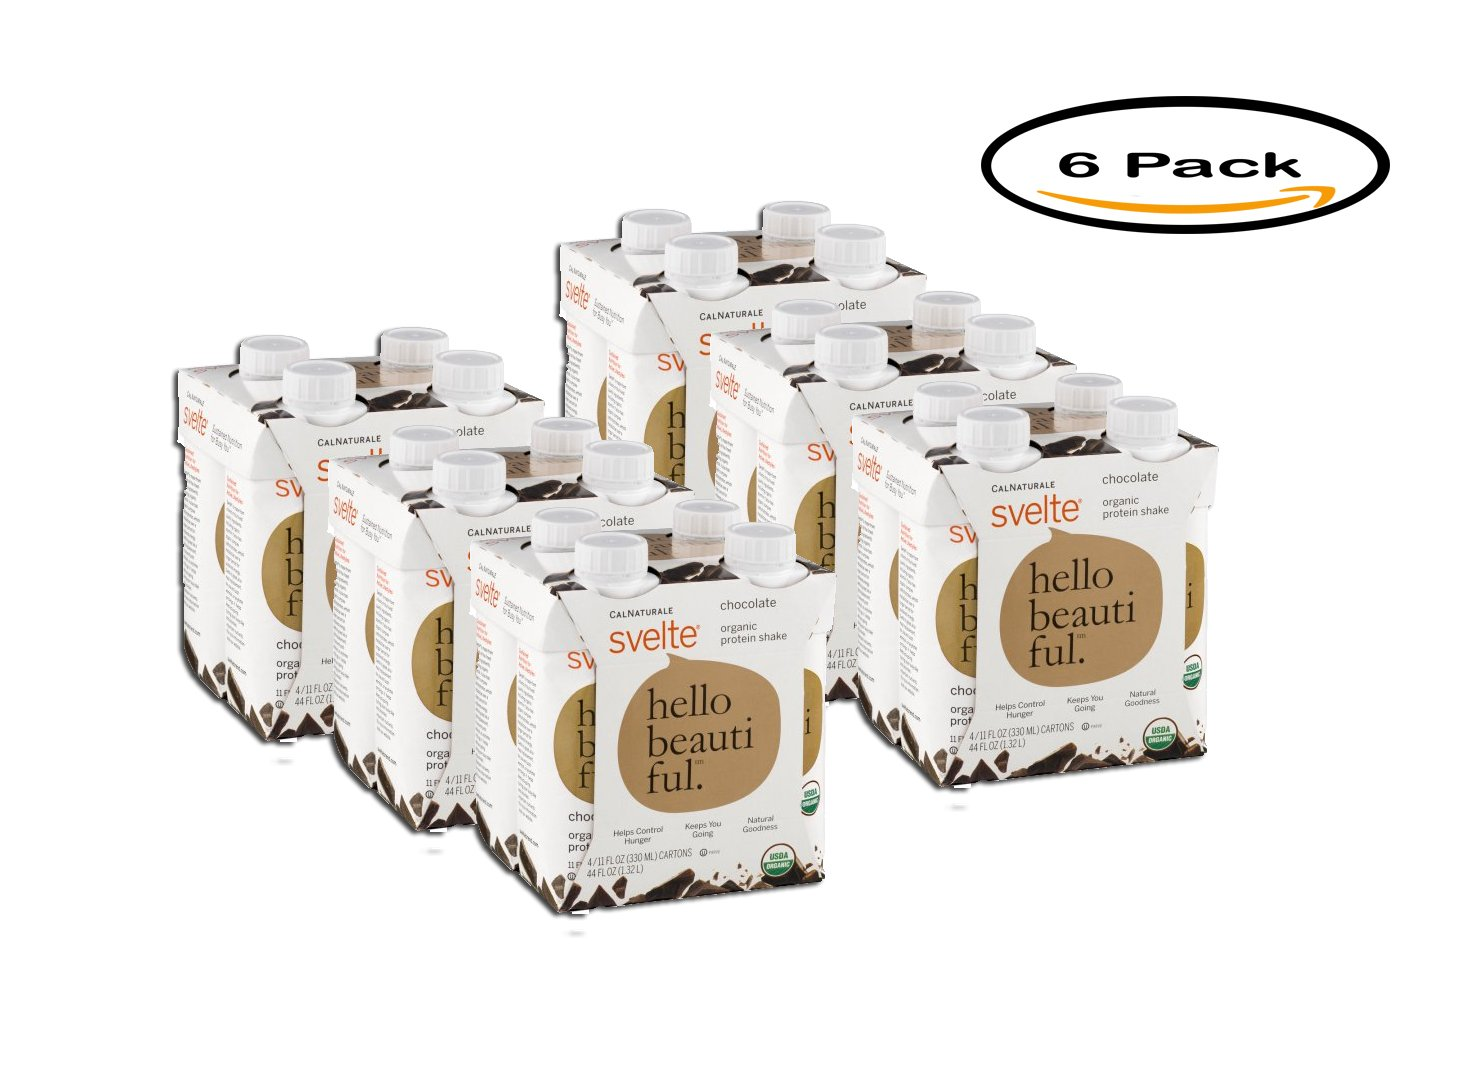 PACK OF 6 - CalNaturale Svelte Chocolate Organic Protein Drink 4 pk 44 oz